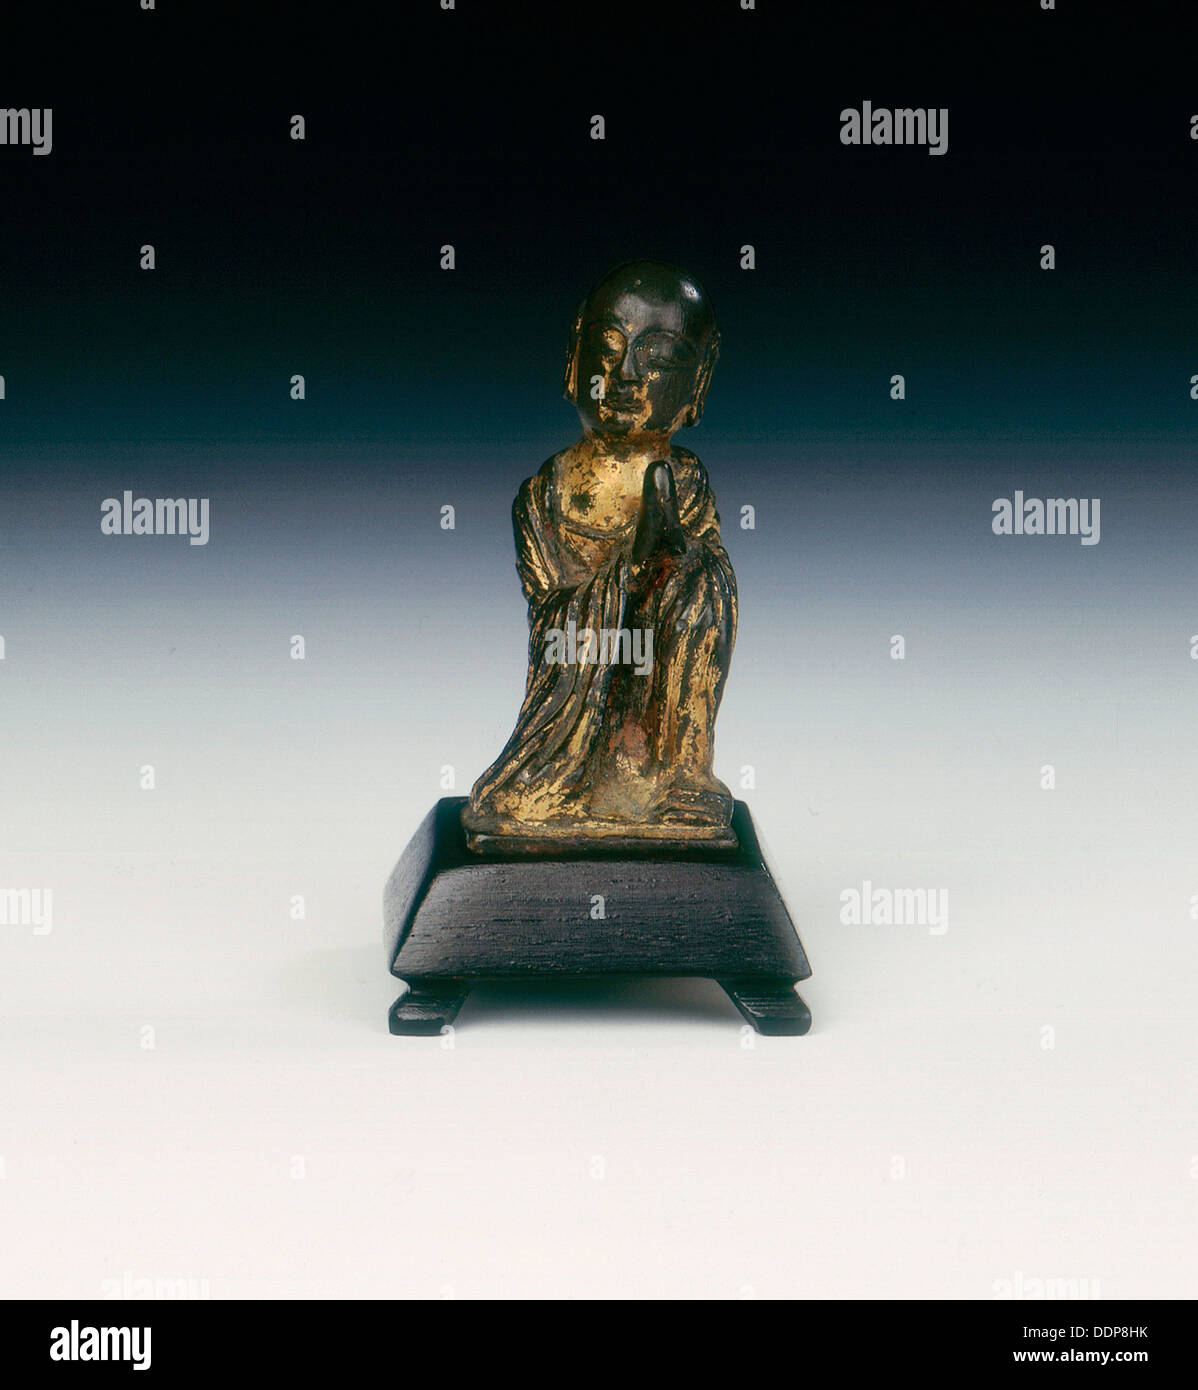 Gilt bronze figure of a monk, Late Six Dynasties period or Tang dynasty, China, 6th-10th century. - Stock Image